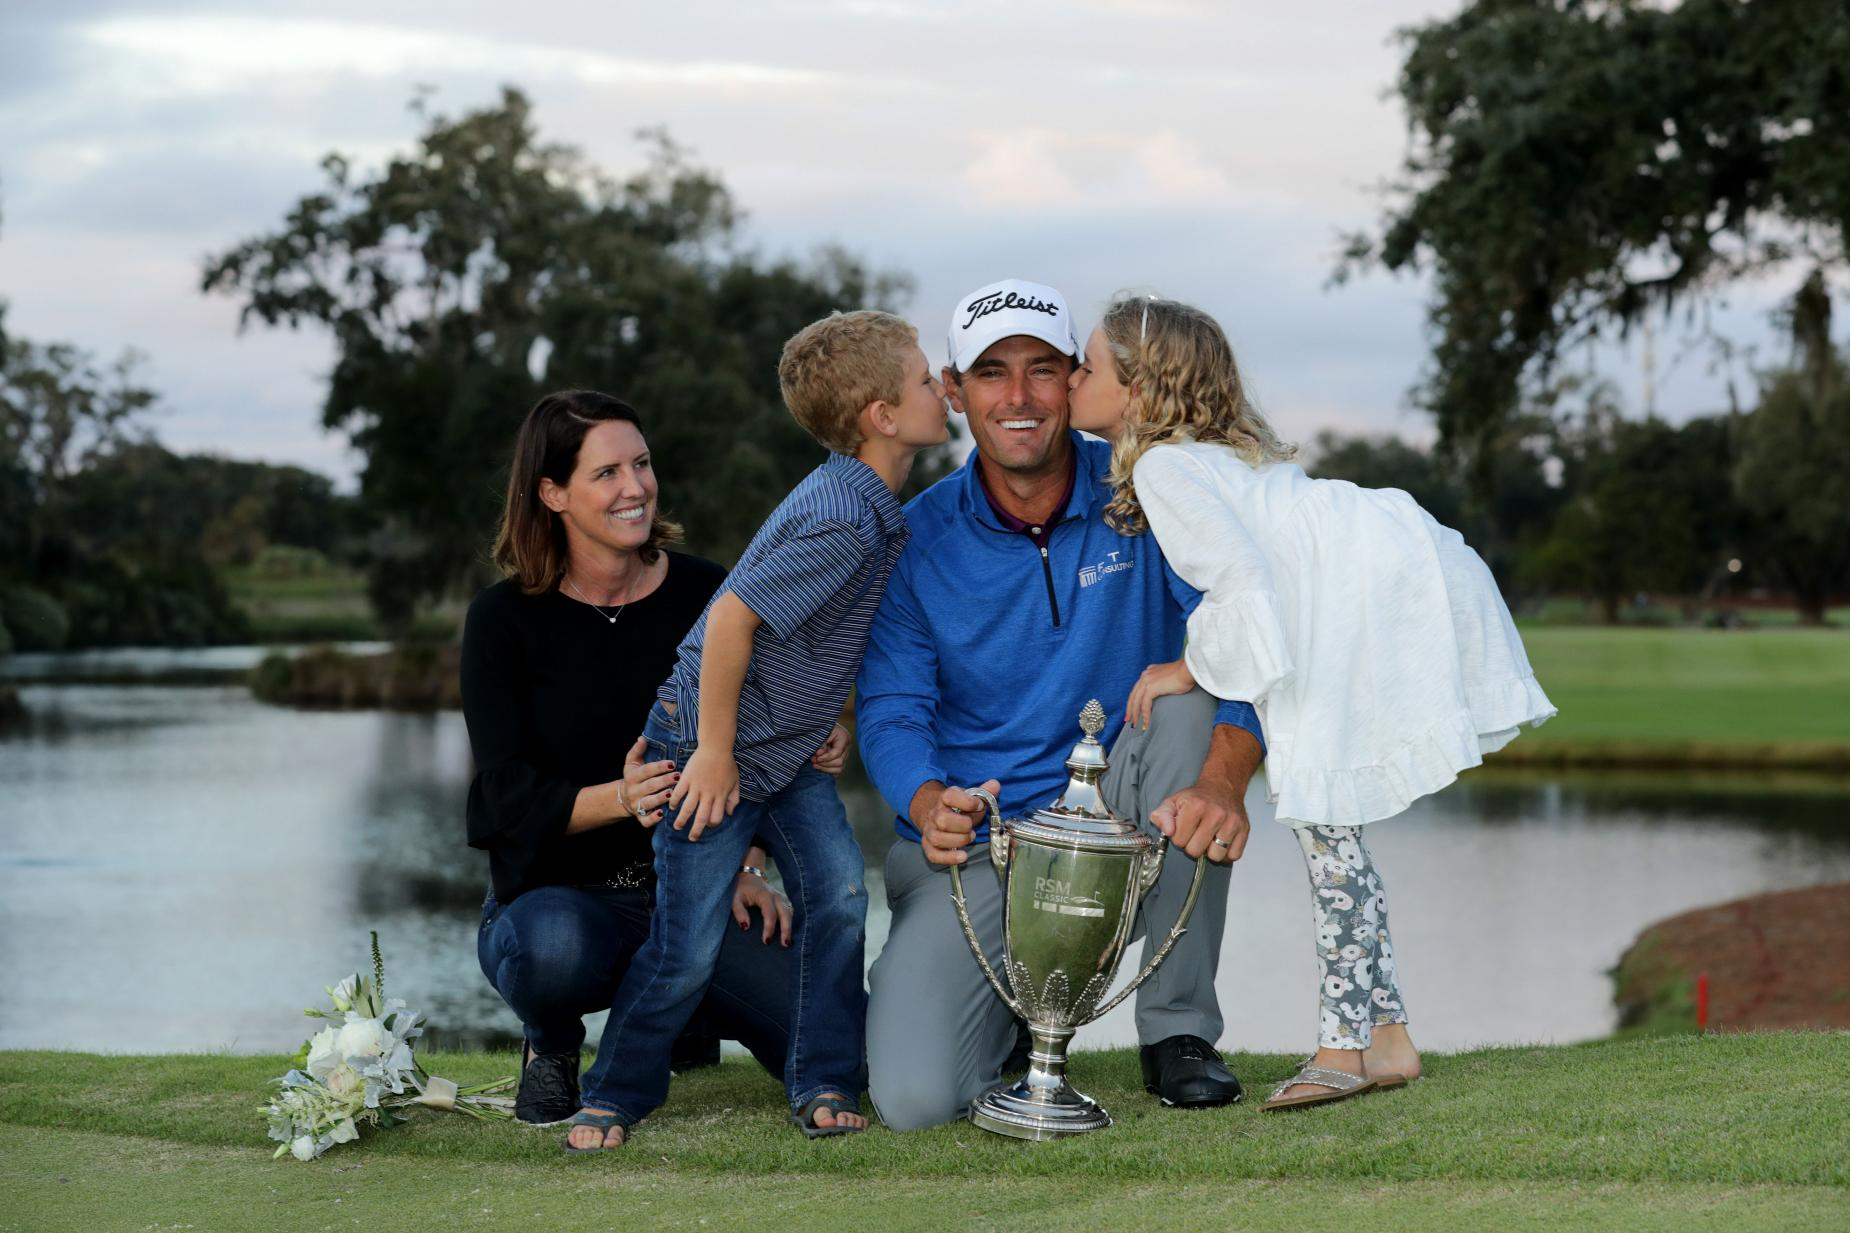 charles-howell-iii-rsm-classic-family-2018-sunday.jpg